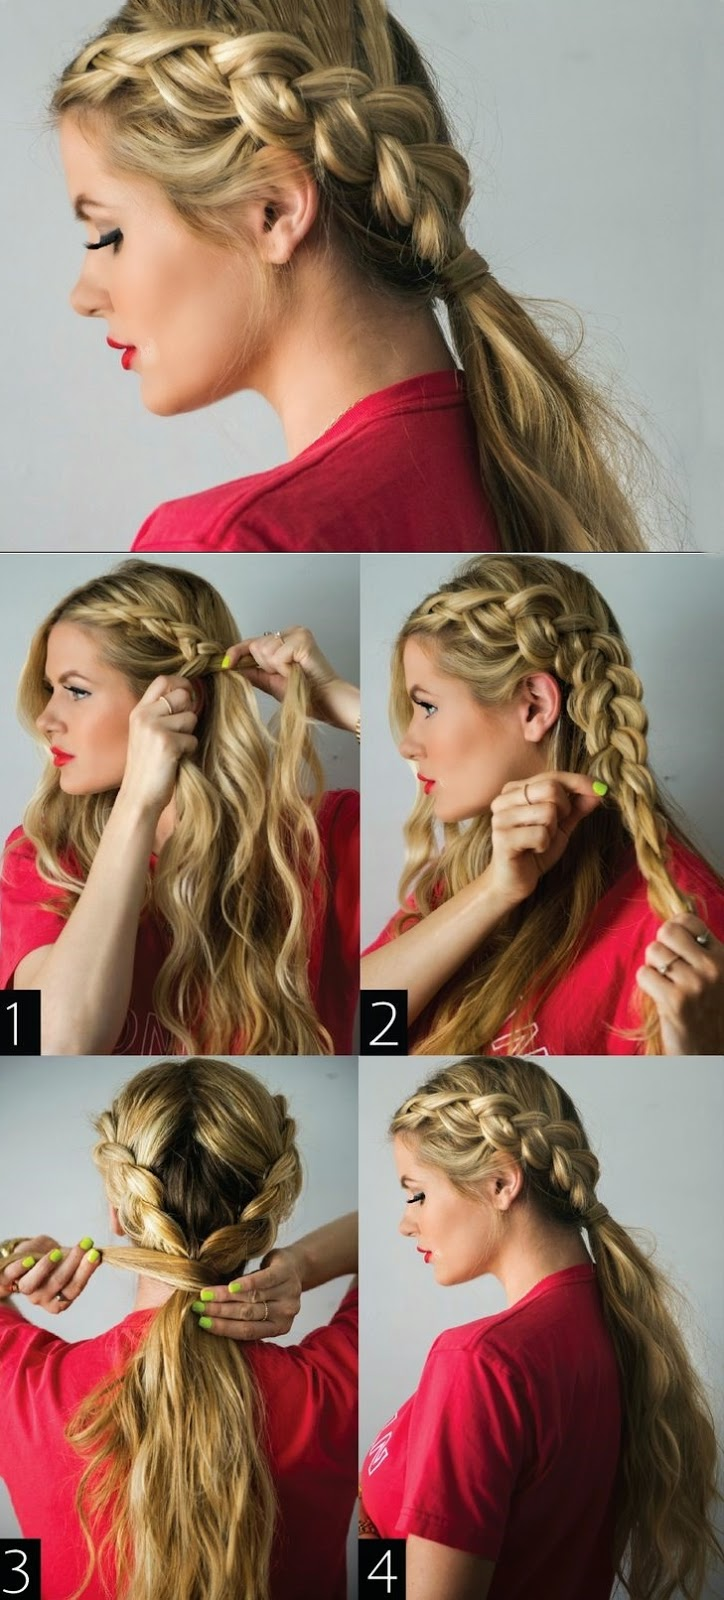 Top 5 Random Hair Tutorial For Women's 2015